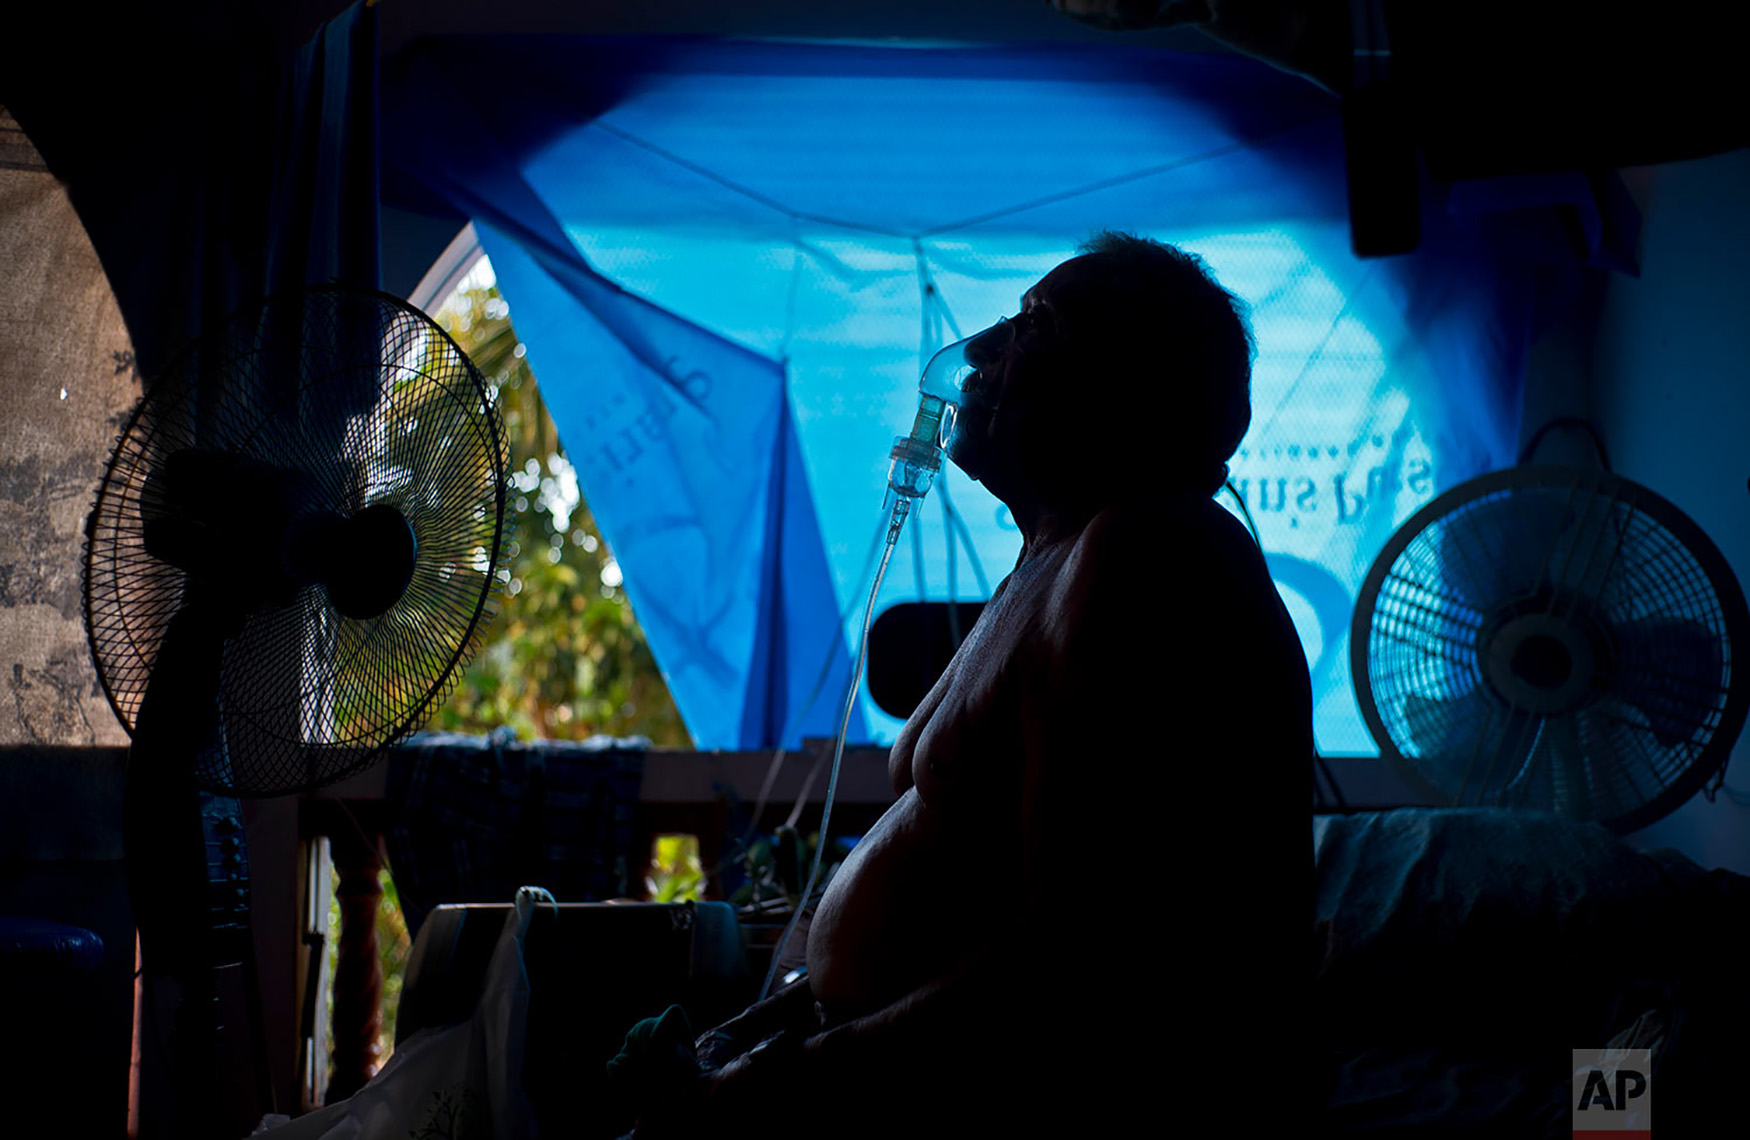 Gilberto Cosme Rodriguez takes one of his 10 a day asthma treatments to help him breathe, inside his home still covered with a tarp after FEMA assistance failed to cover the cost of fixing his roof that was torn off by last year's Hurricane Maria in Naranjito, Puerto Rico, Sept. 9, 2018. Rodriguez, who has one working lung due to pulmonary fibrosis triggered by the use of chemicals when he worked in construction, said every morning he needs treatment to get out of bed. (AP Photo/Ramon Espinosa)